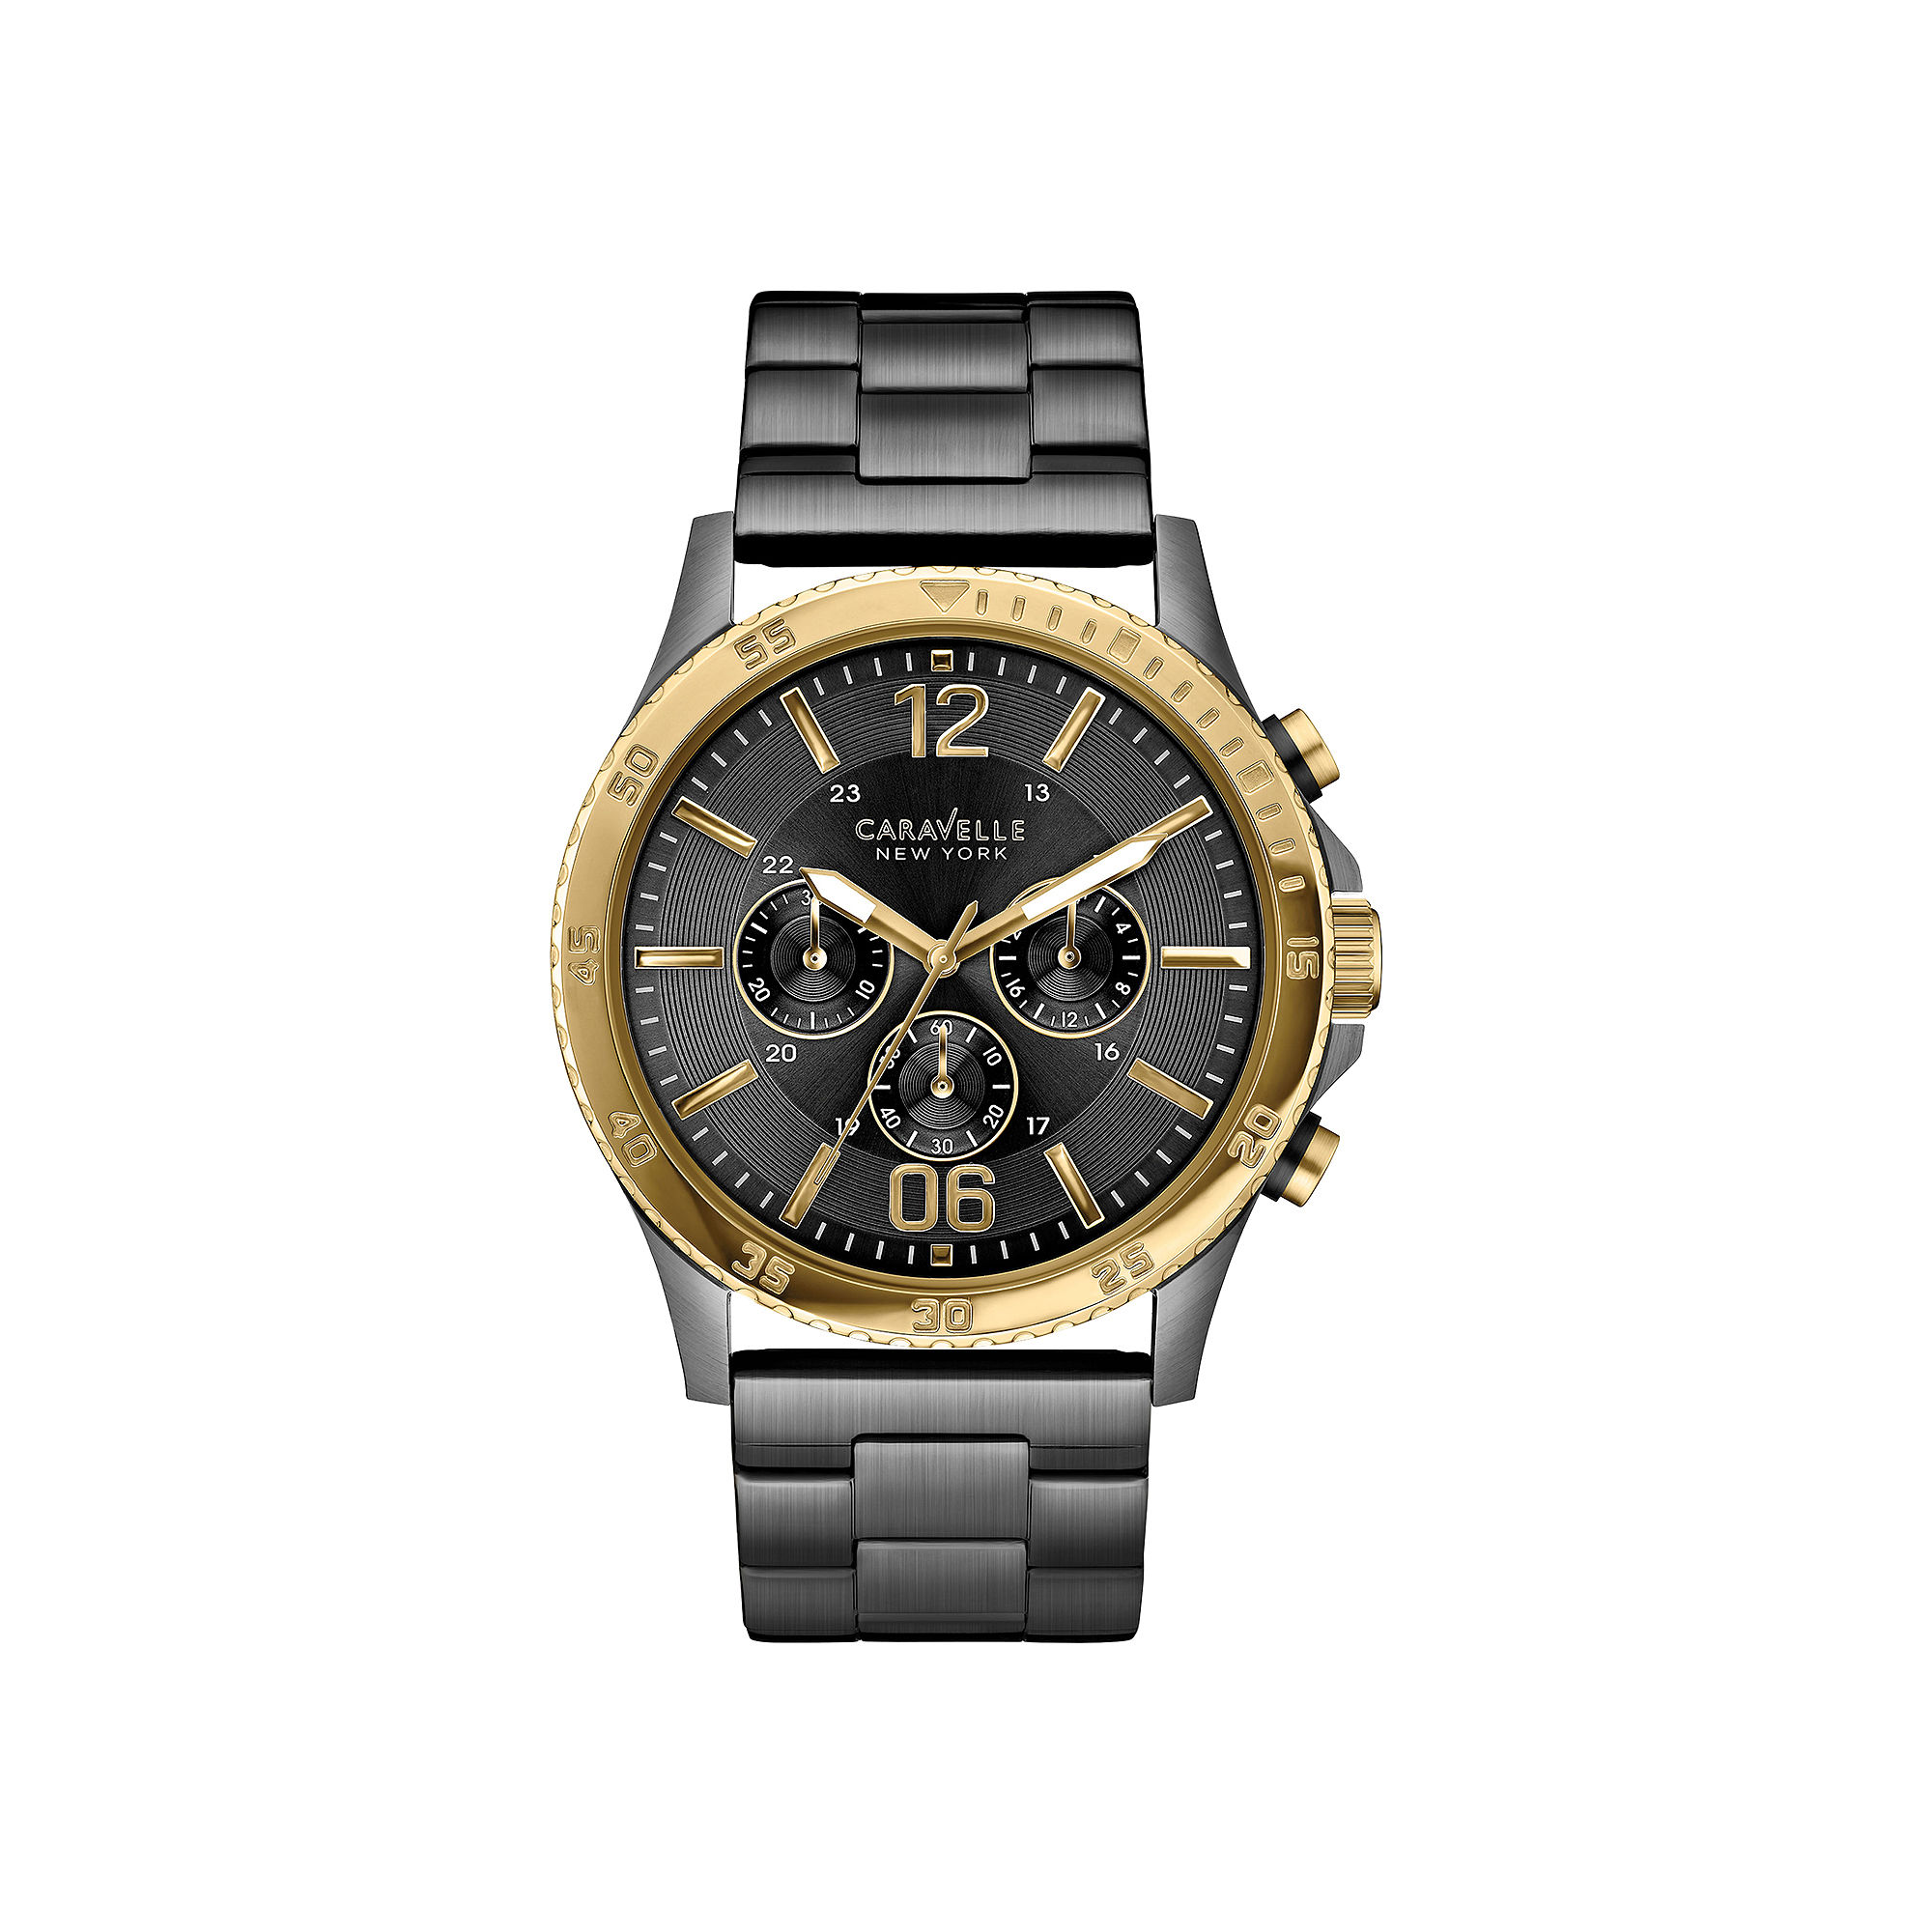 5d2a21ad0 ... Caravelle New York Mens Black Ion Gold-Tone Chronograph Watch. UPC  042429512528